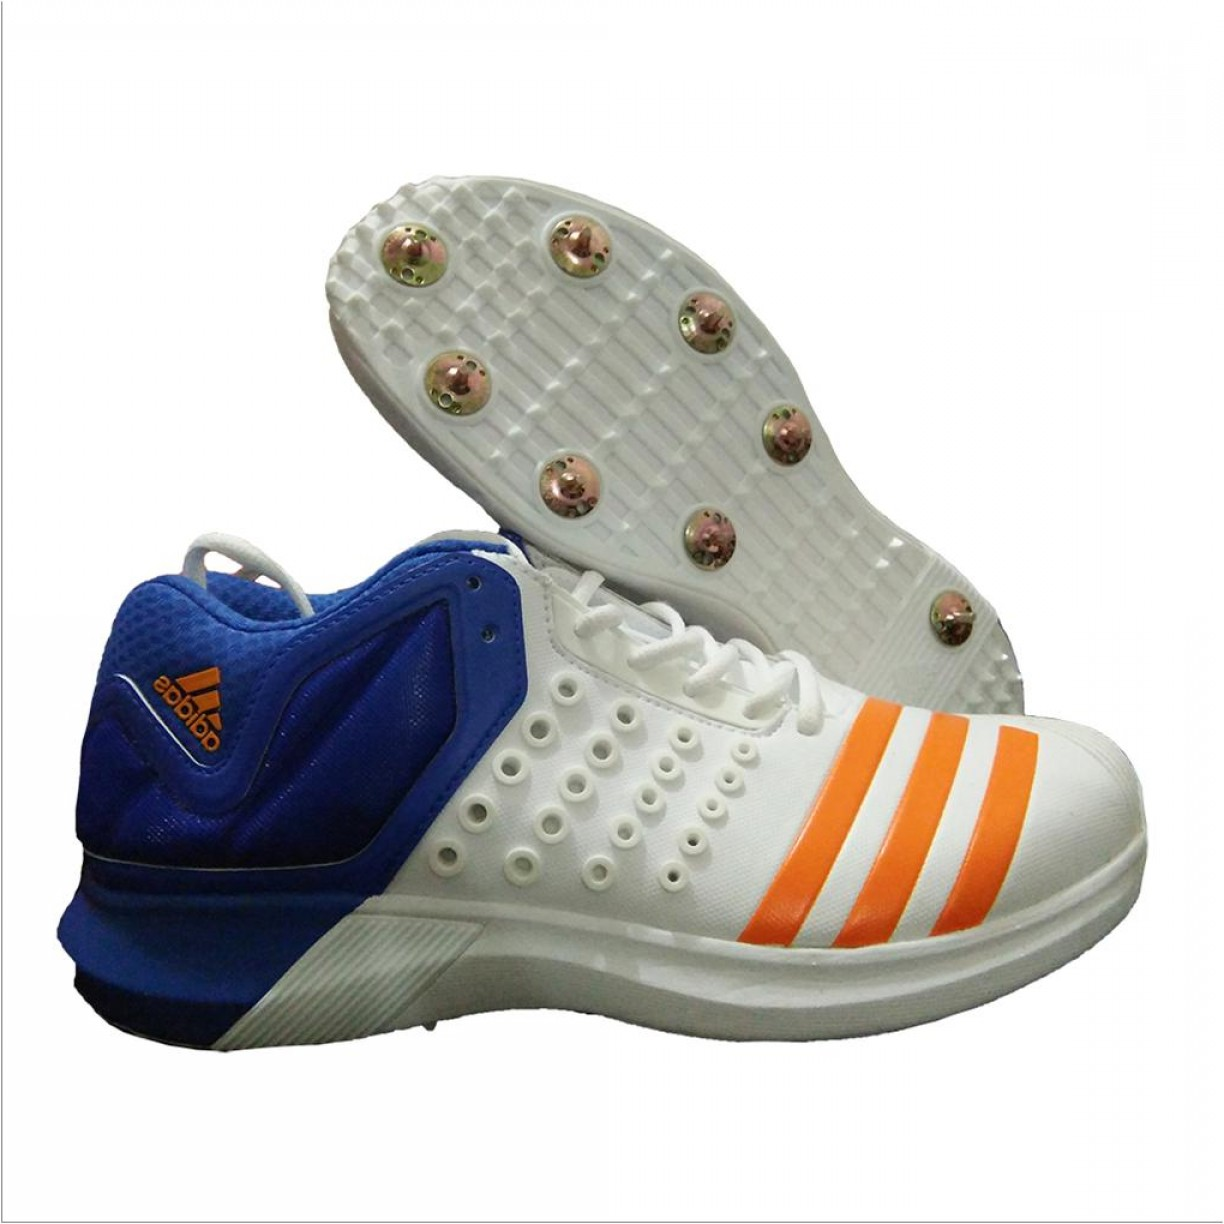 Adidas Brand Vector: Adidas Adipower Vector Mid Full Spike Cricket Shoes White Orange And Blue